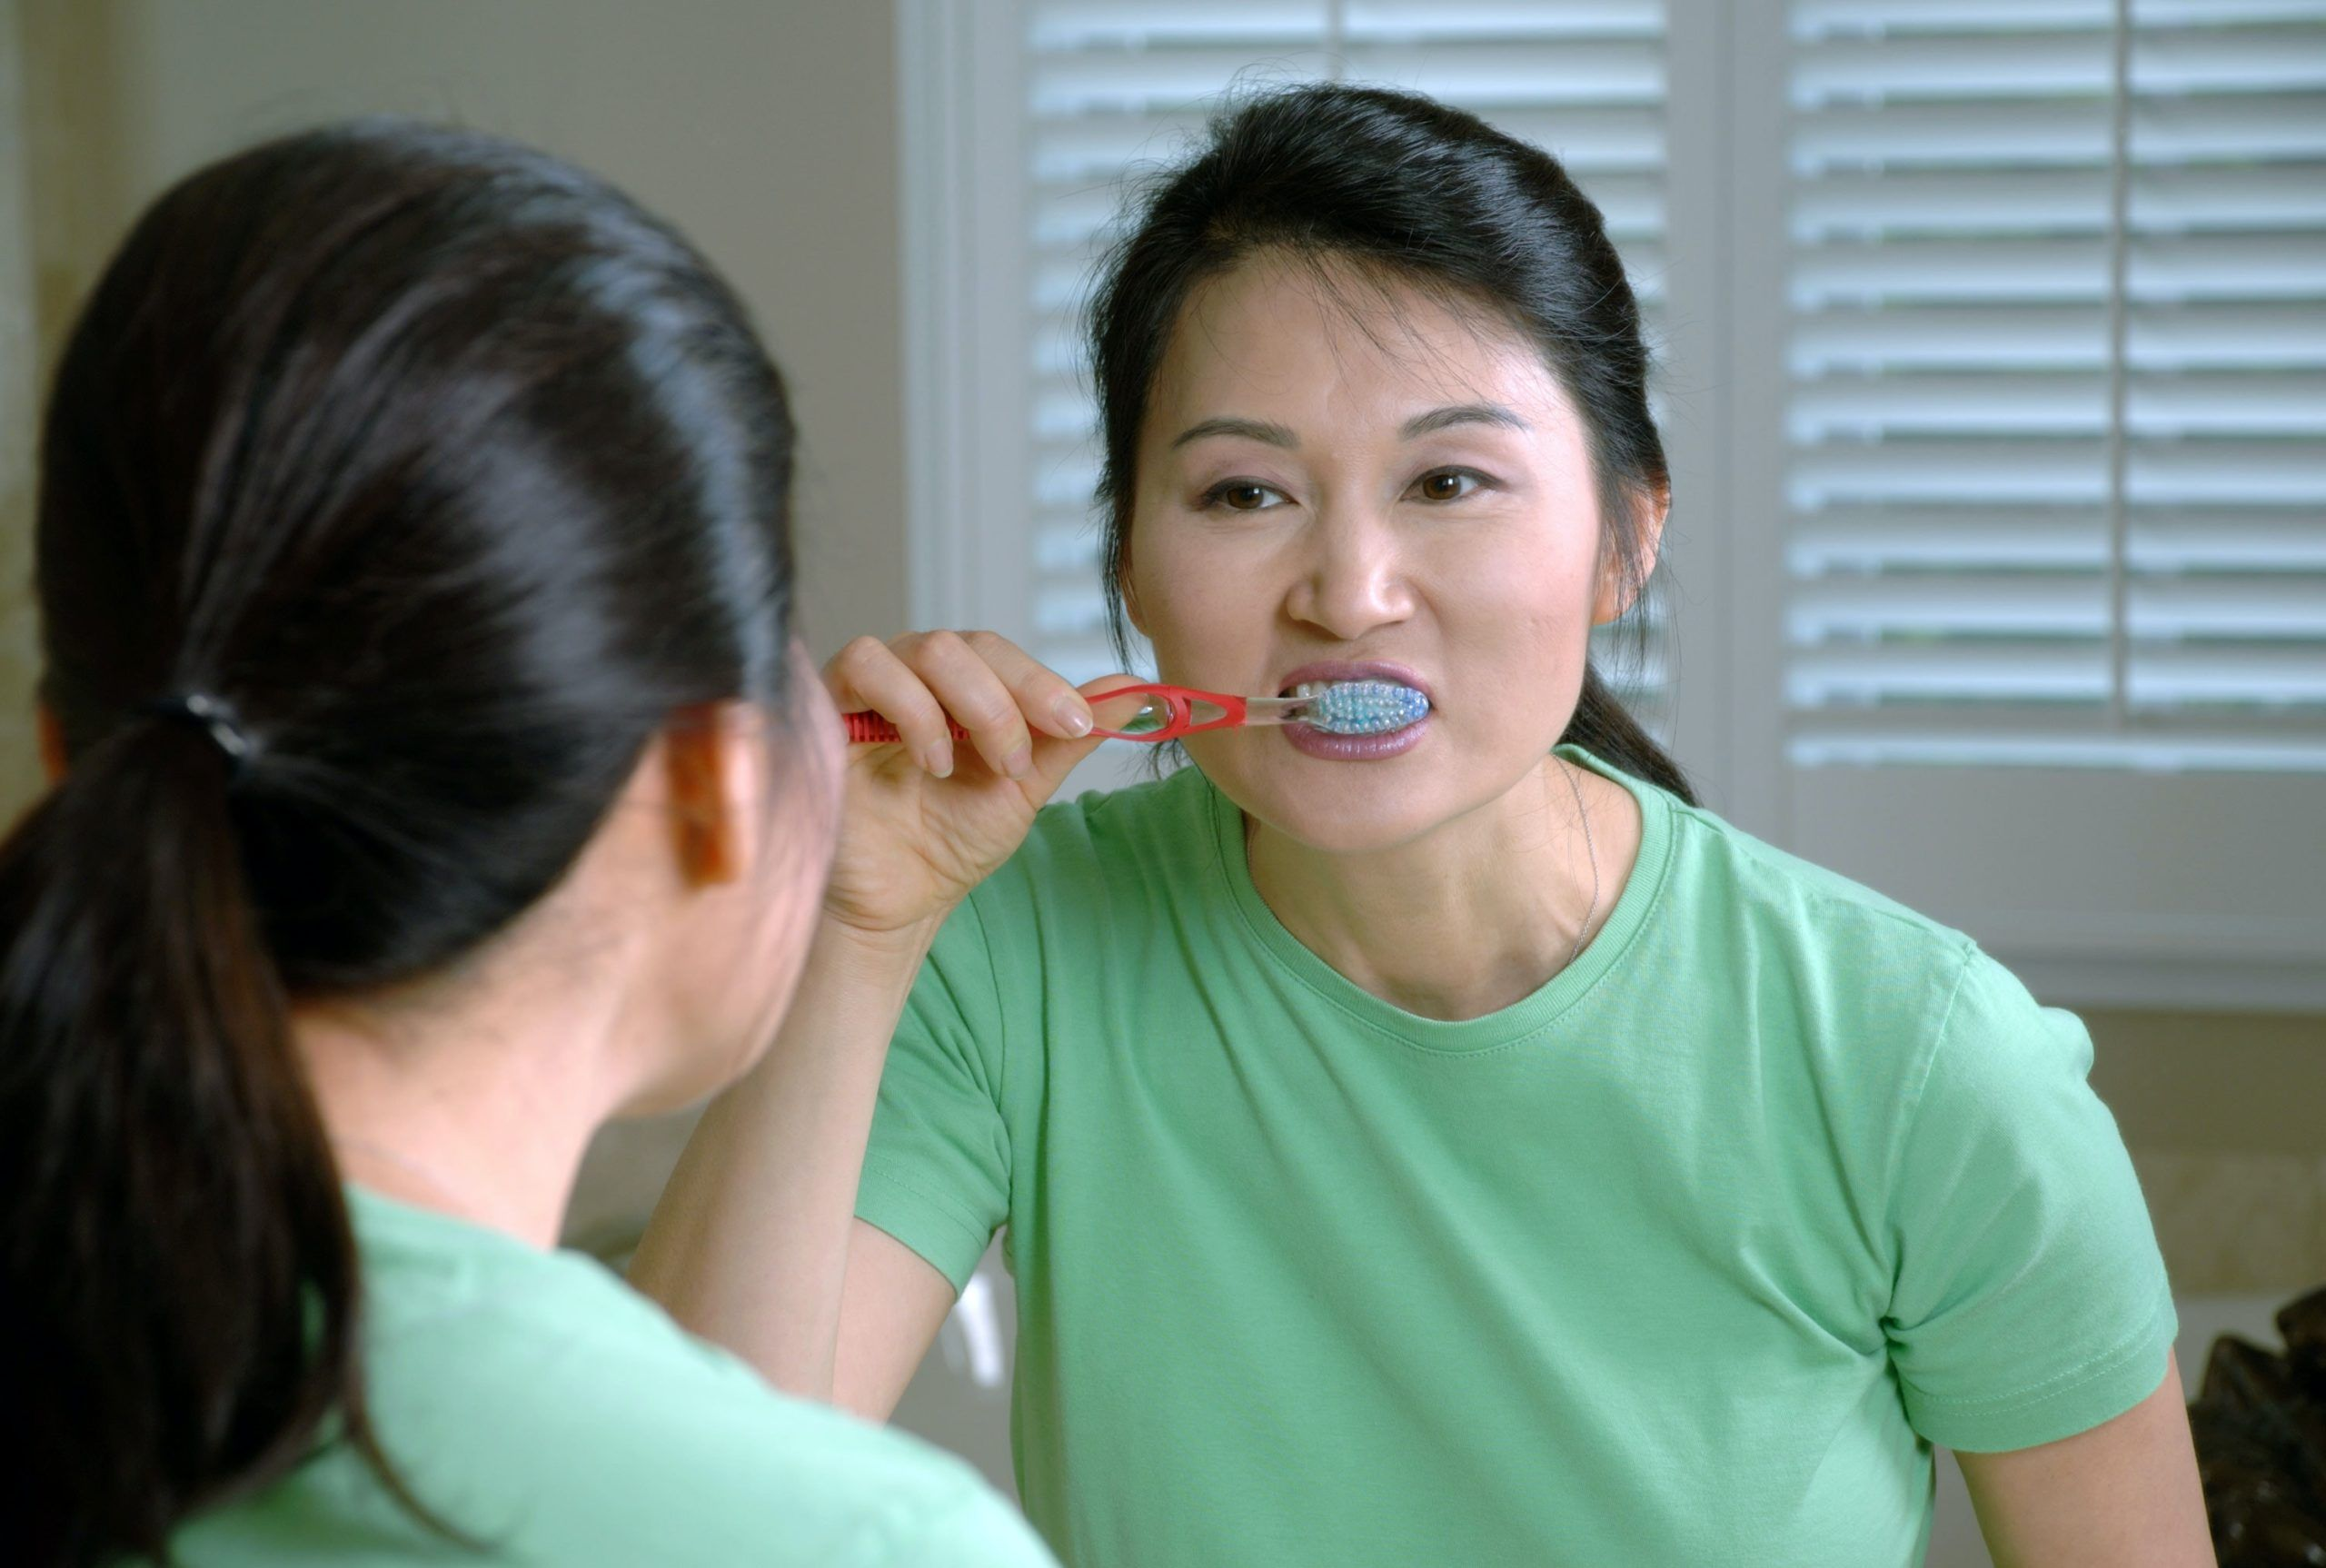 woman-brushing-teeth-with-mirror